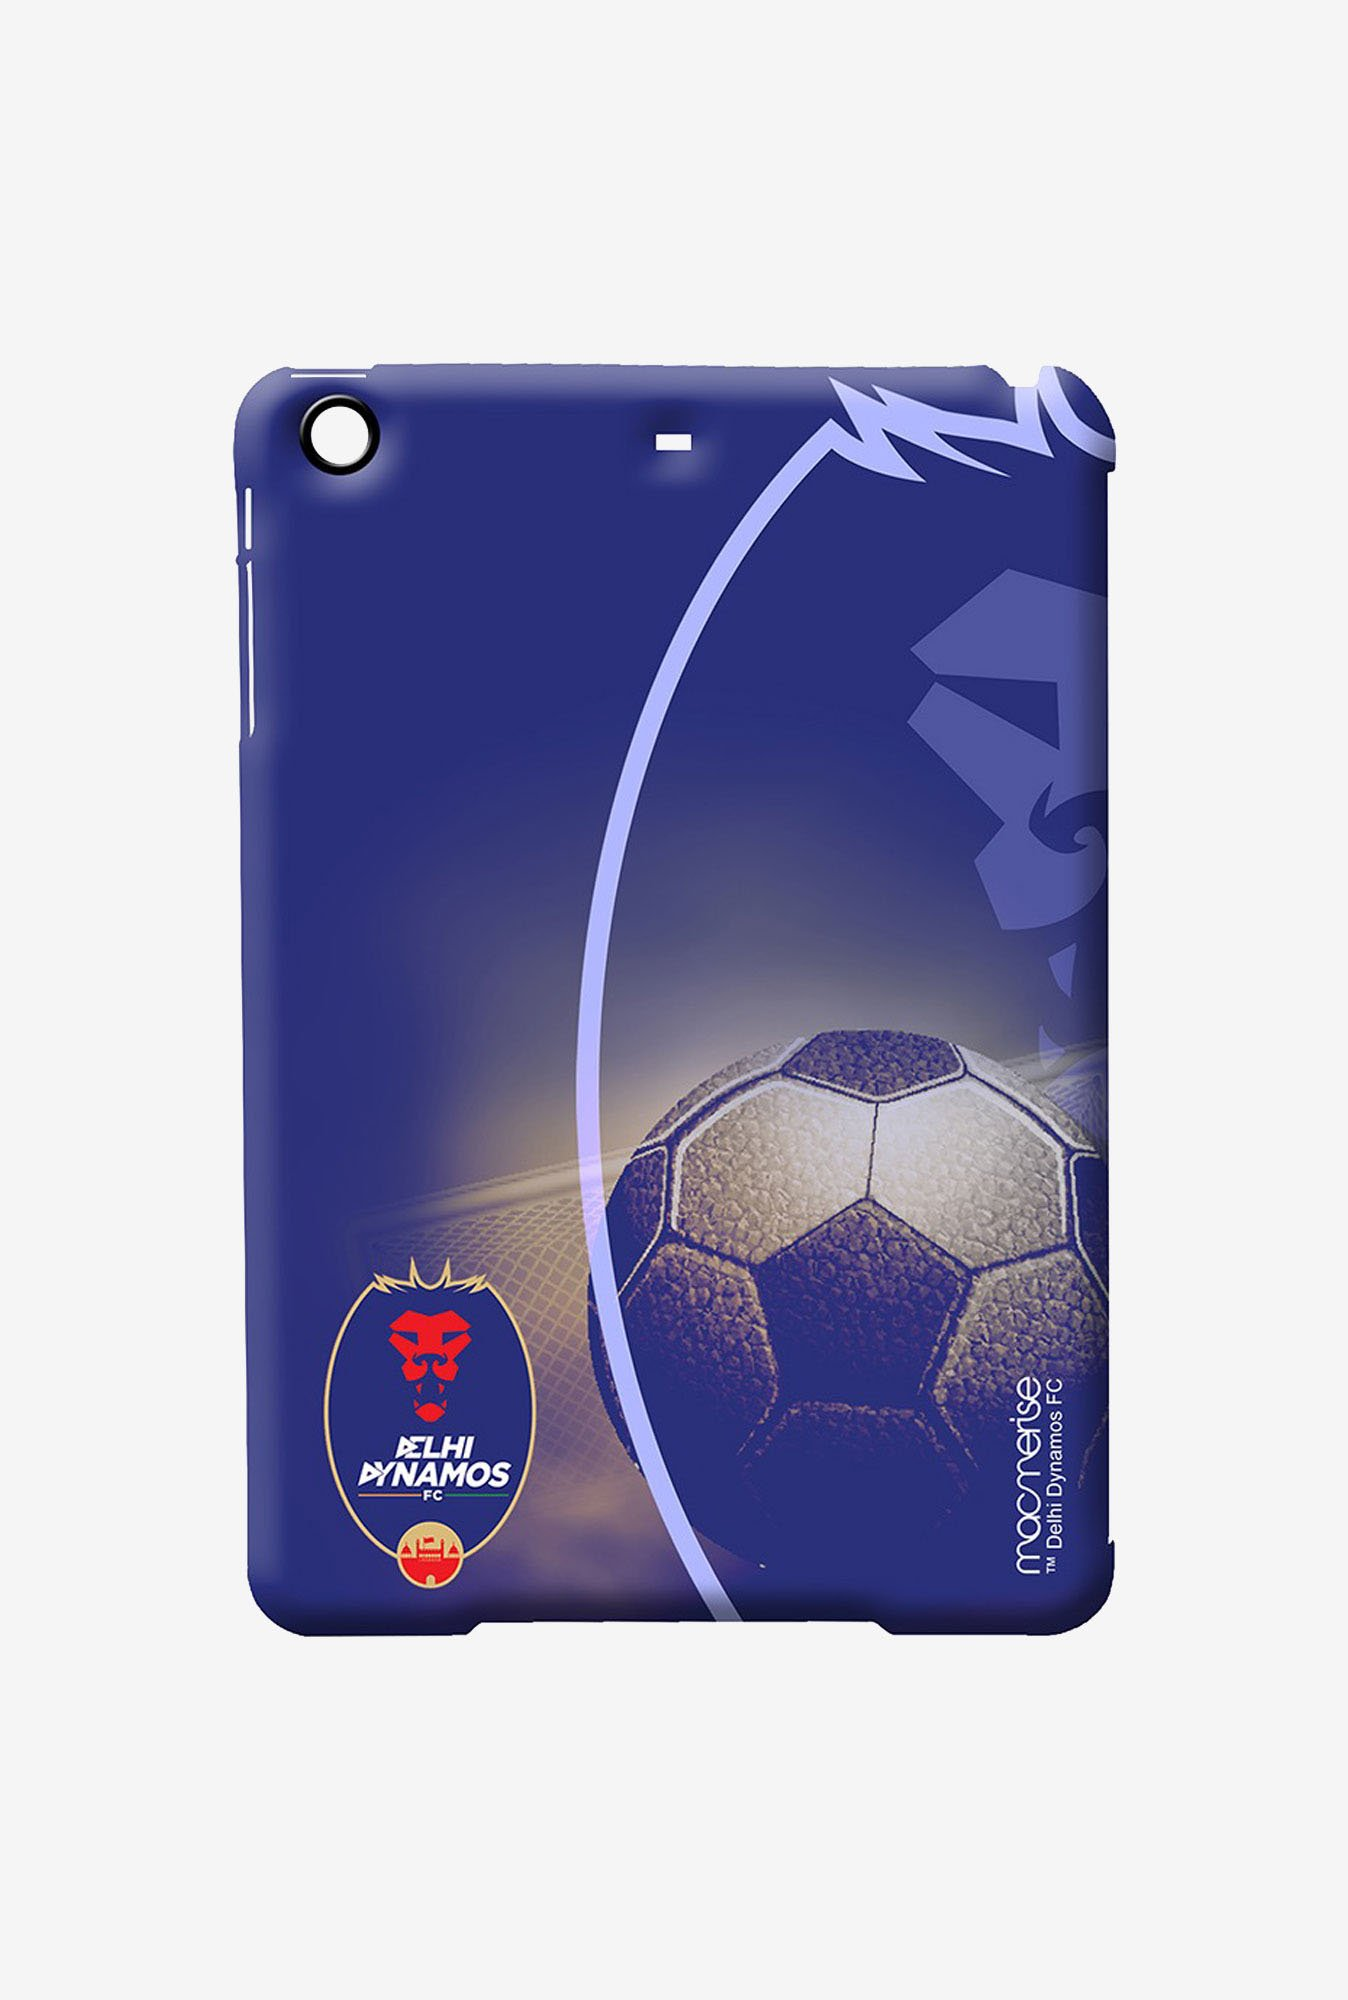 Macmerise Delhi Dynamos Glory Pro Case for iPad 2/3/4